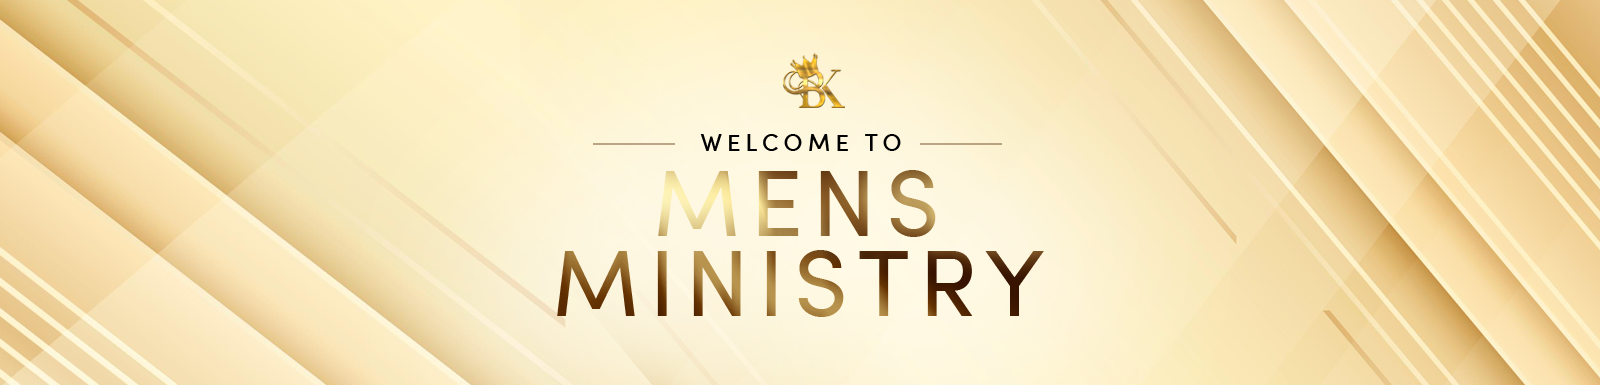 bkim mens ministry 2.png